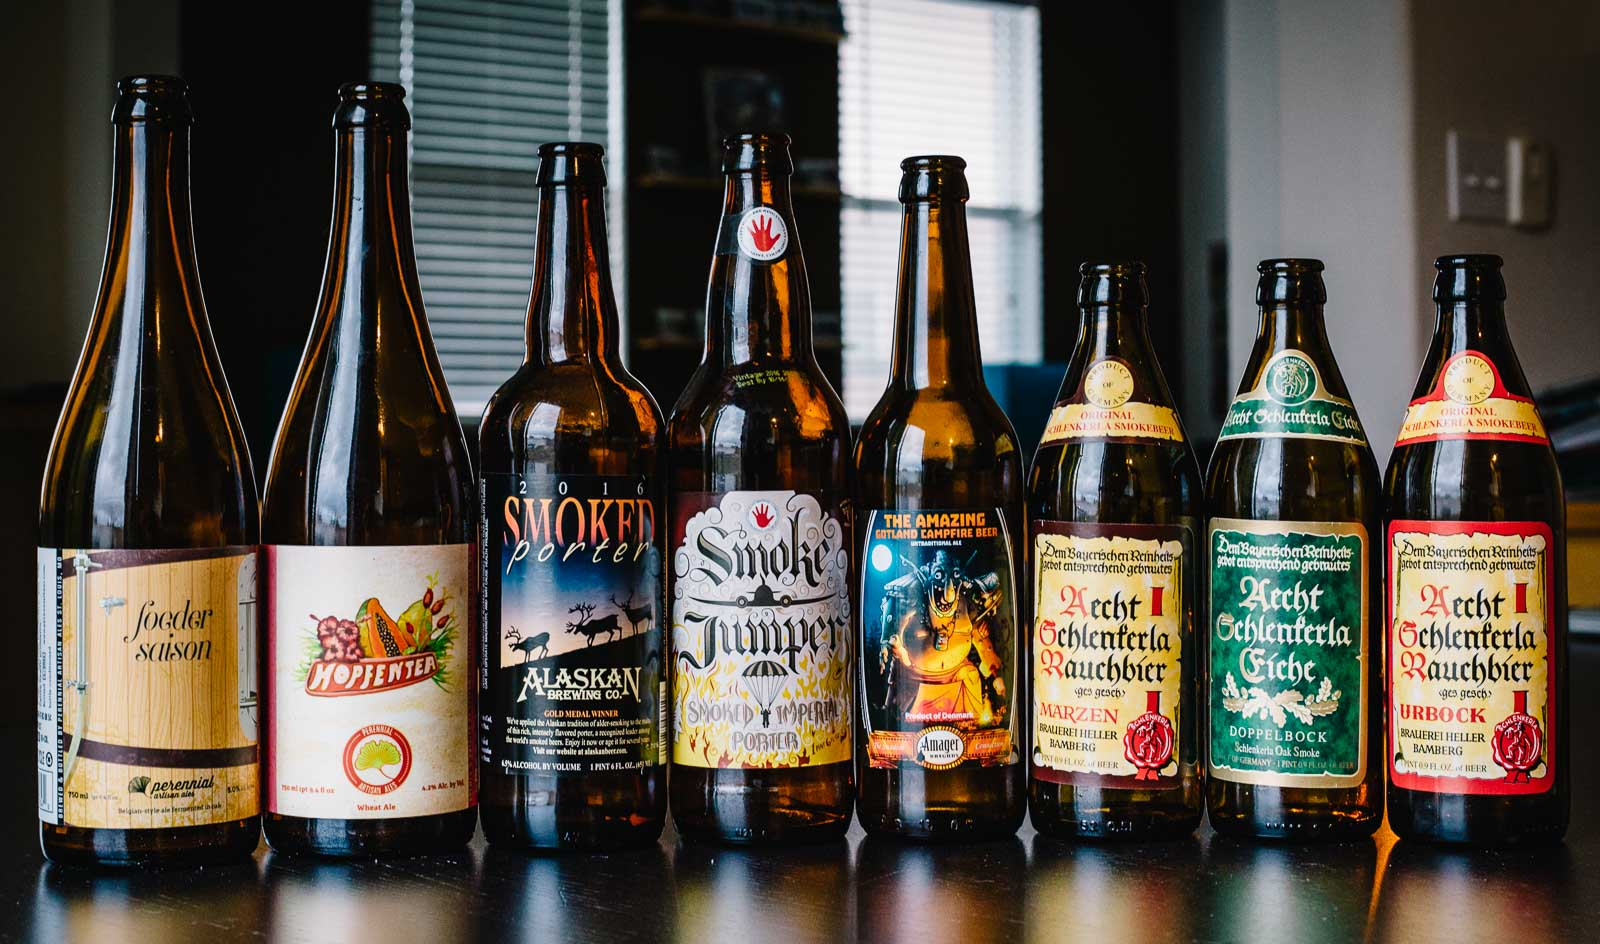 Smoked and Non-Smoked Beers